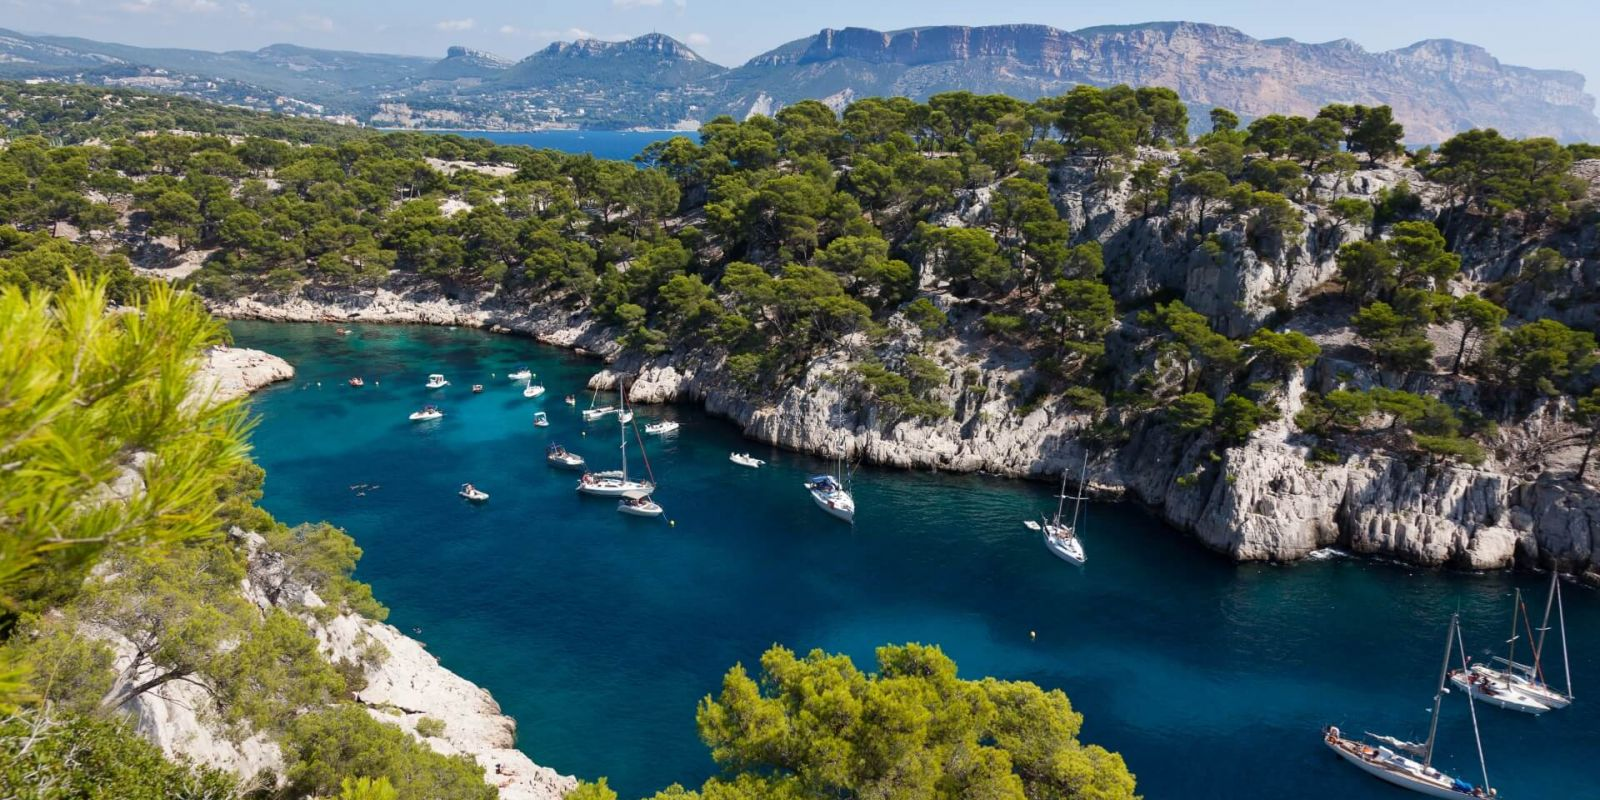 https://www.talamare.com/medias/Yacht charter Calanques, yacht rental Calanques Marseille